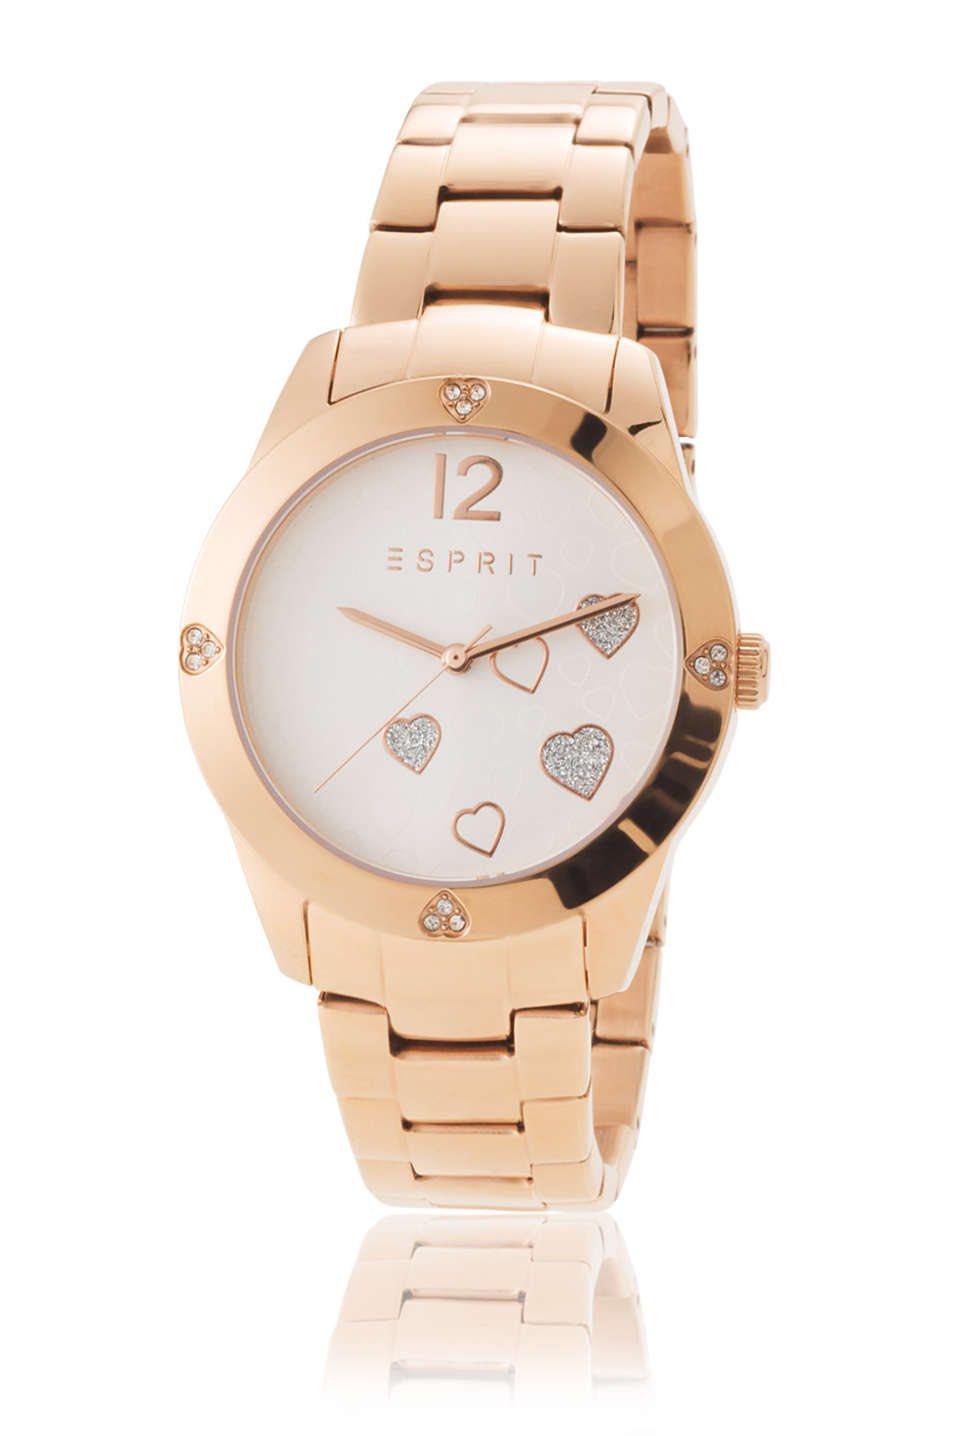 Watch with red gold hearts, stainless-steel casing and strap, zirconia trim plus heart detail plaited bracelet, Ø approx. 36 mm